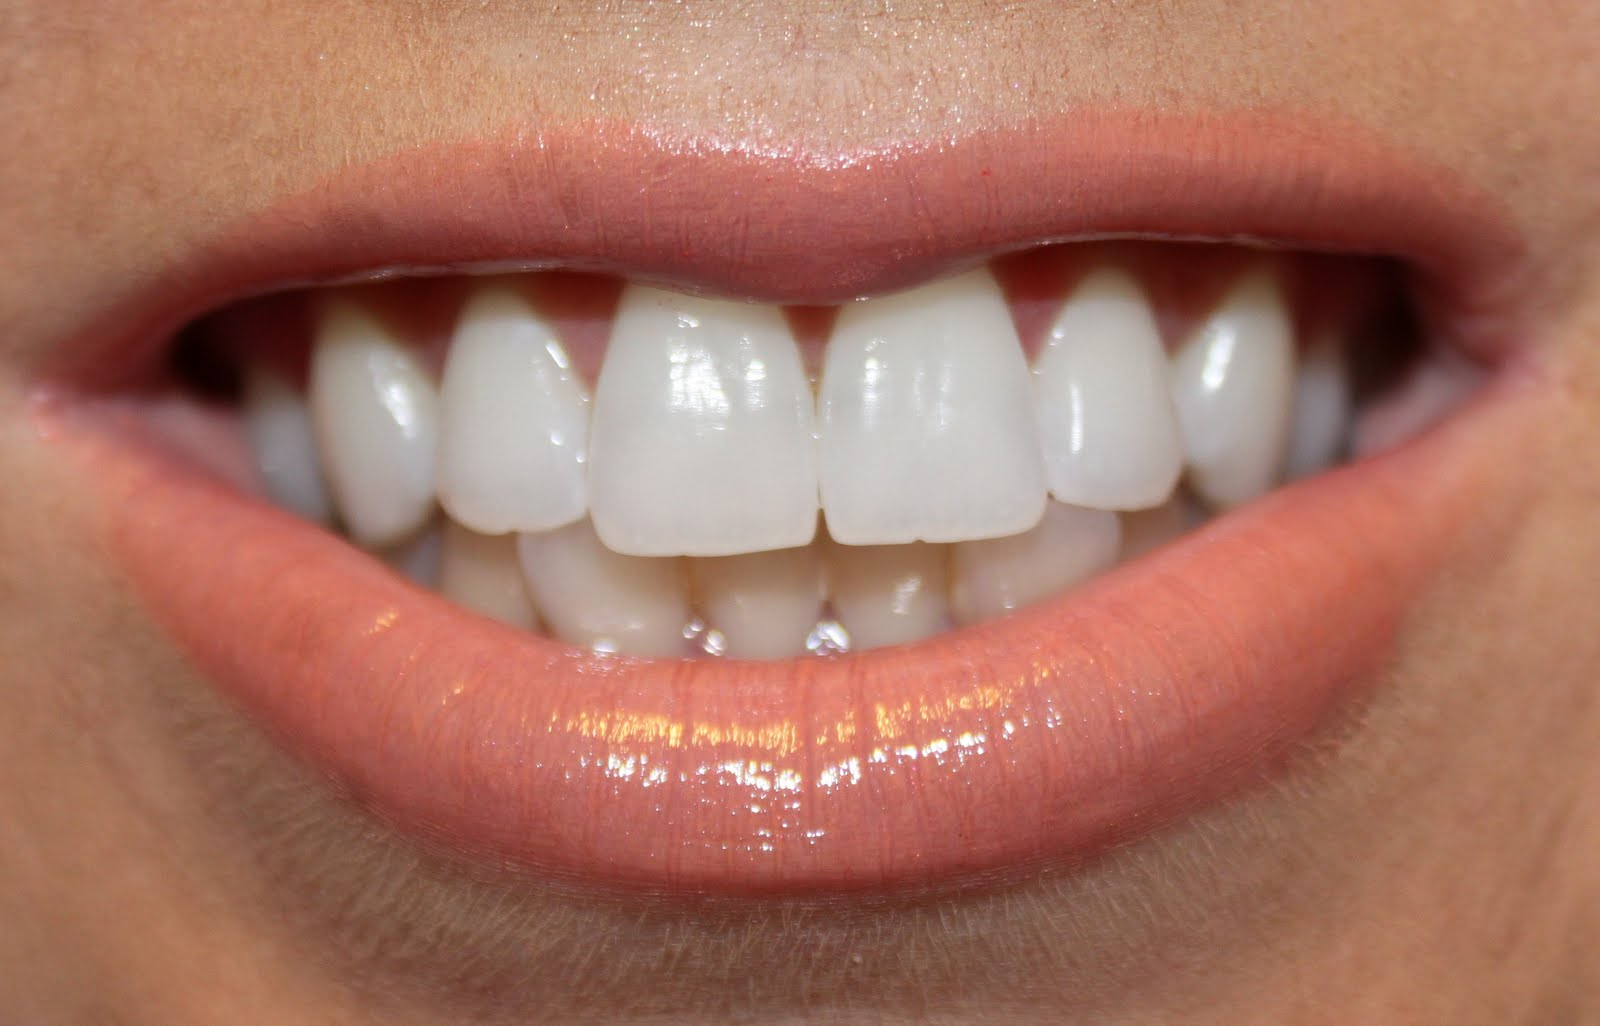 Crest 3d whitestrips